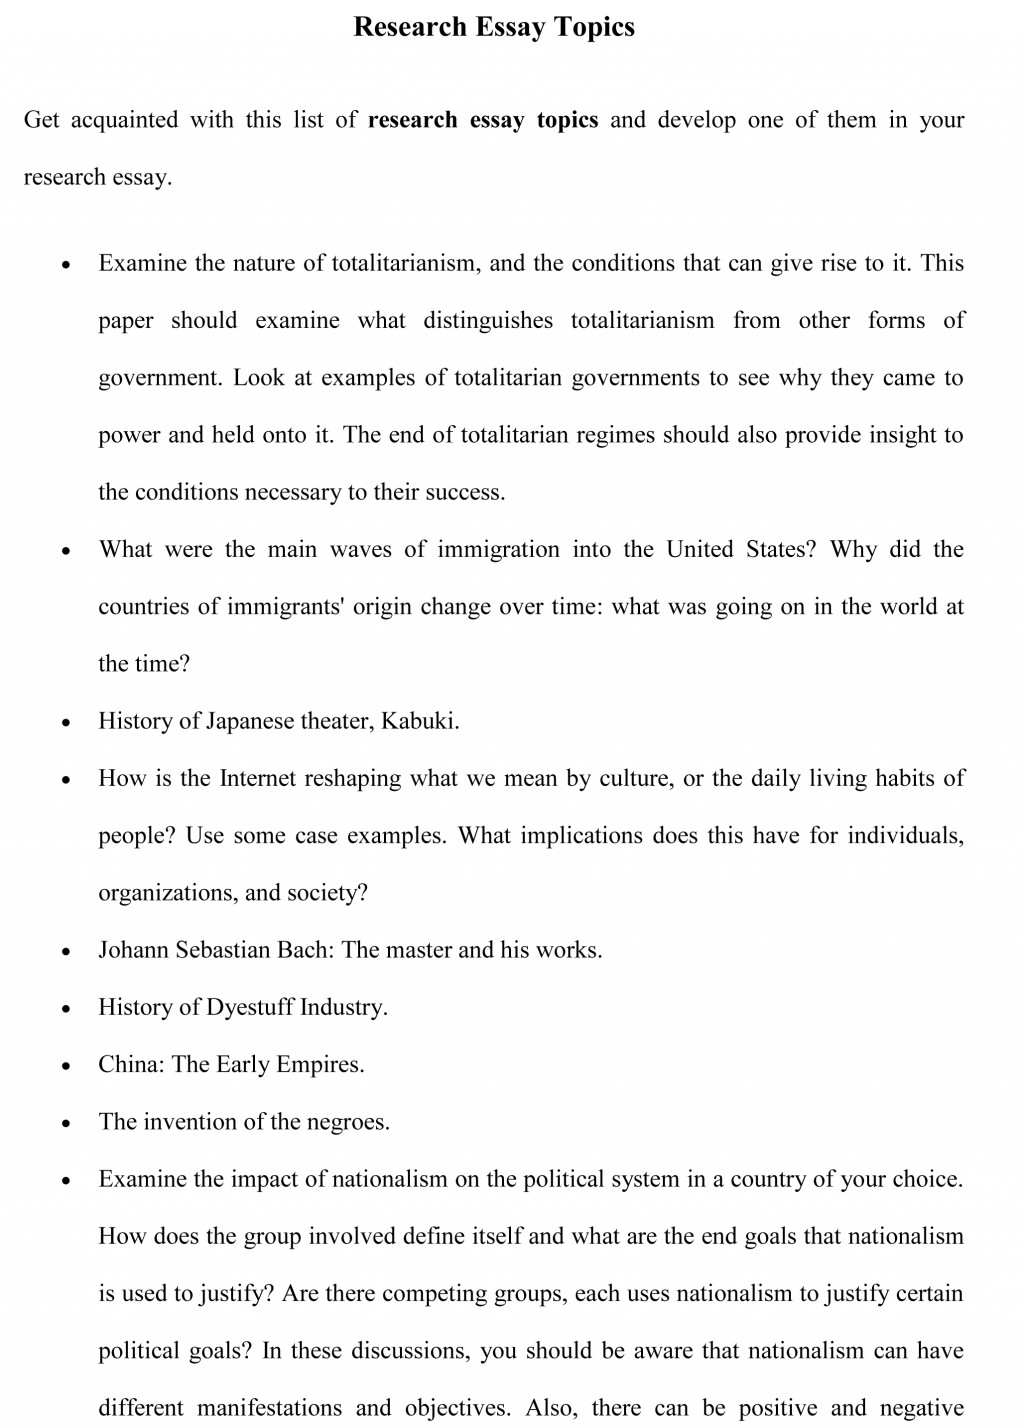 005 Research Paper Business Topics Essay Striking Ethics Law And Large